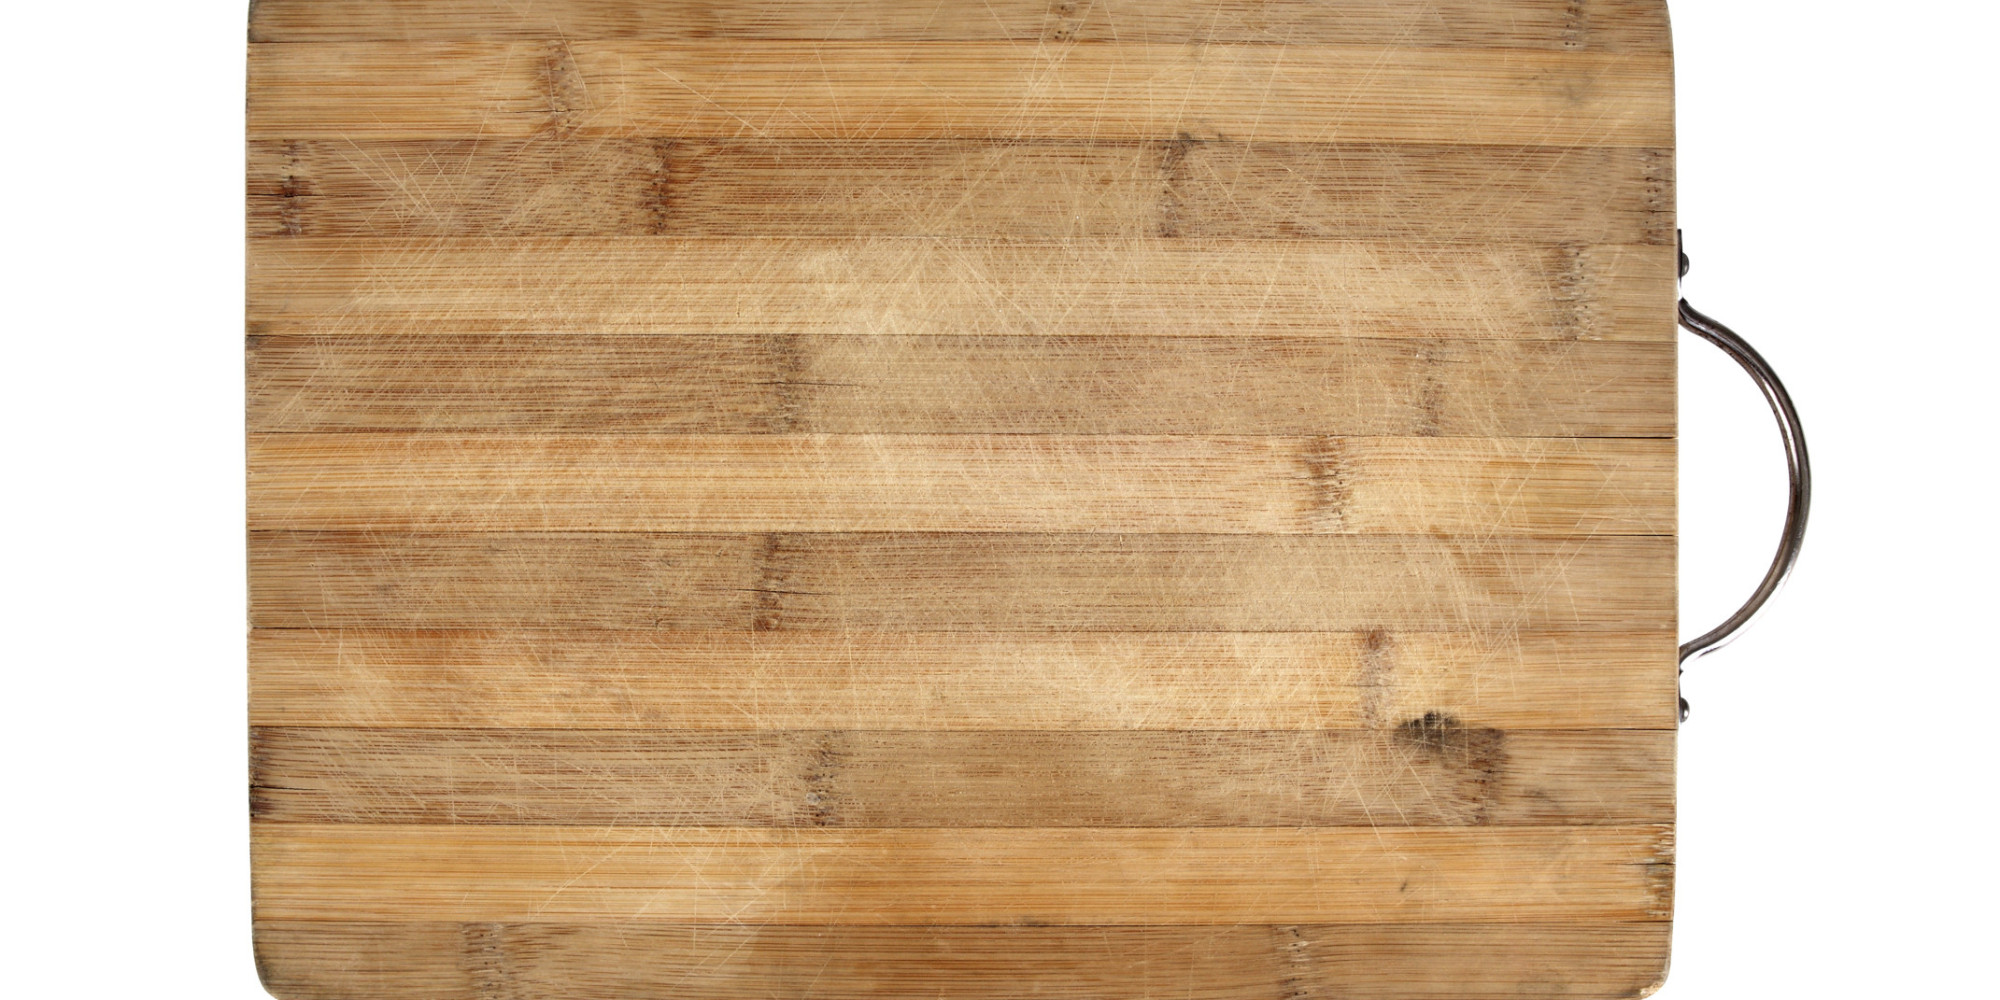 Chopping Table Kitchen Wood Or Plastic Cutting Boards Which Is Better Huffpost